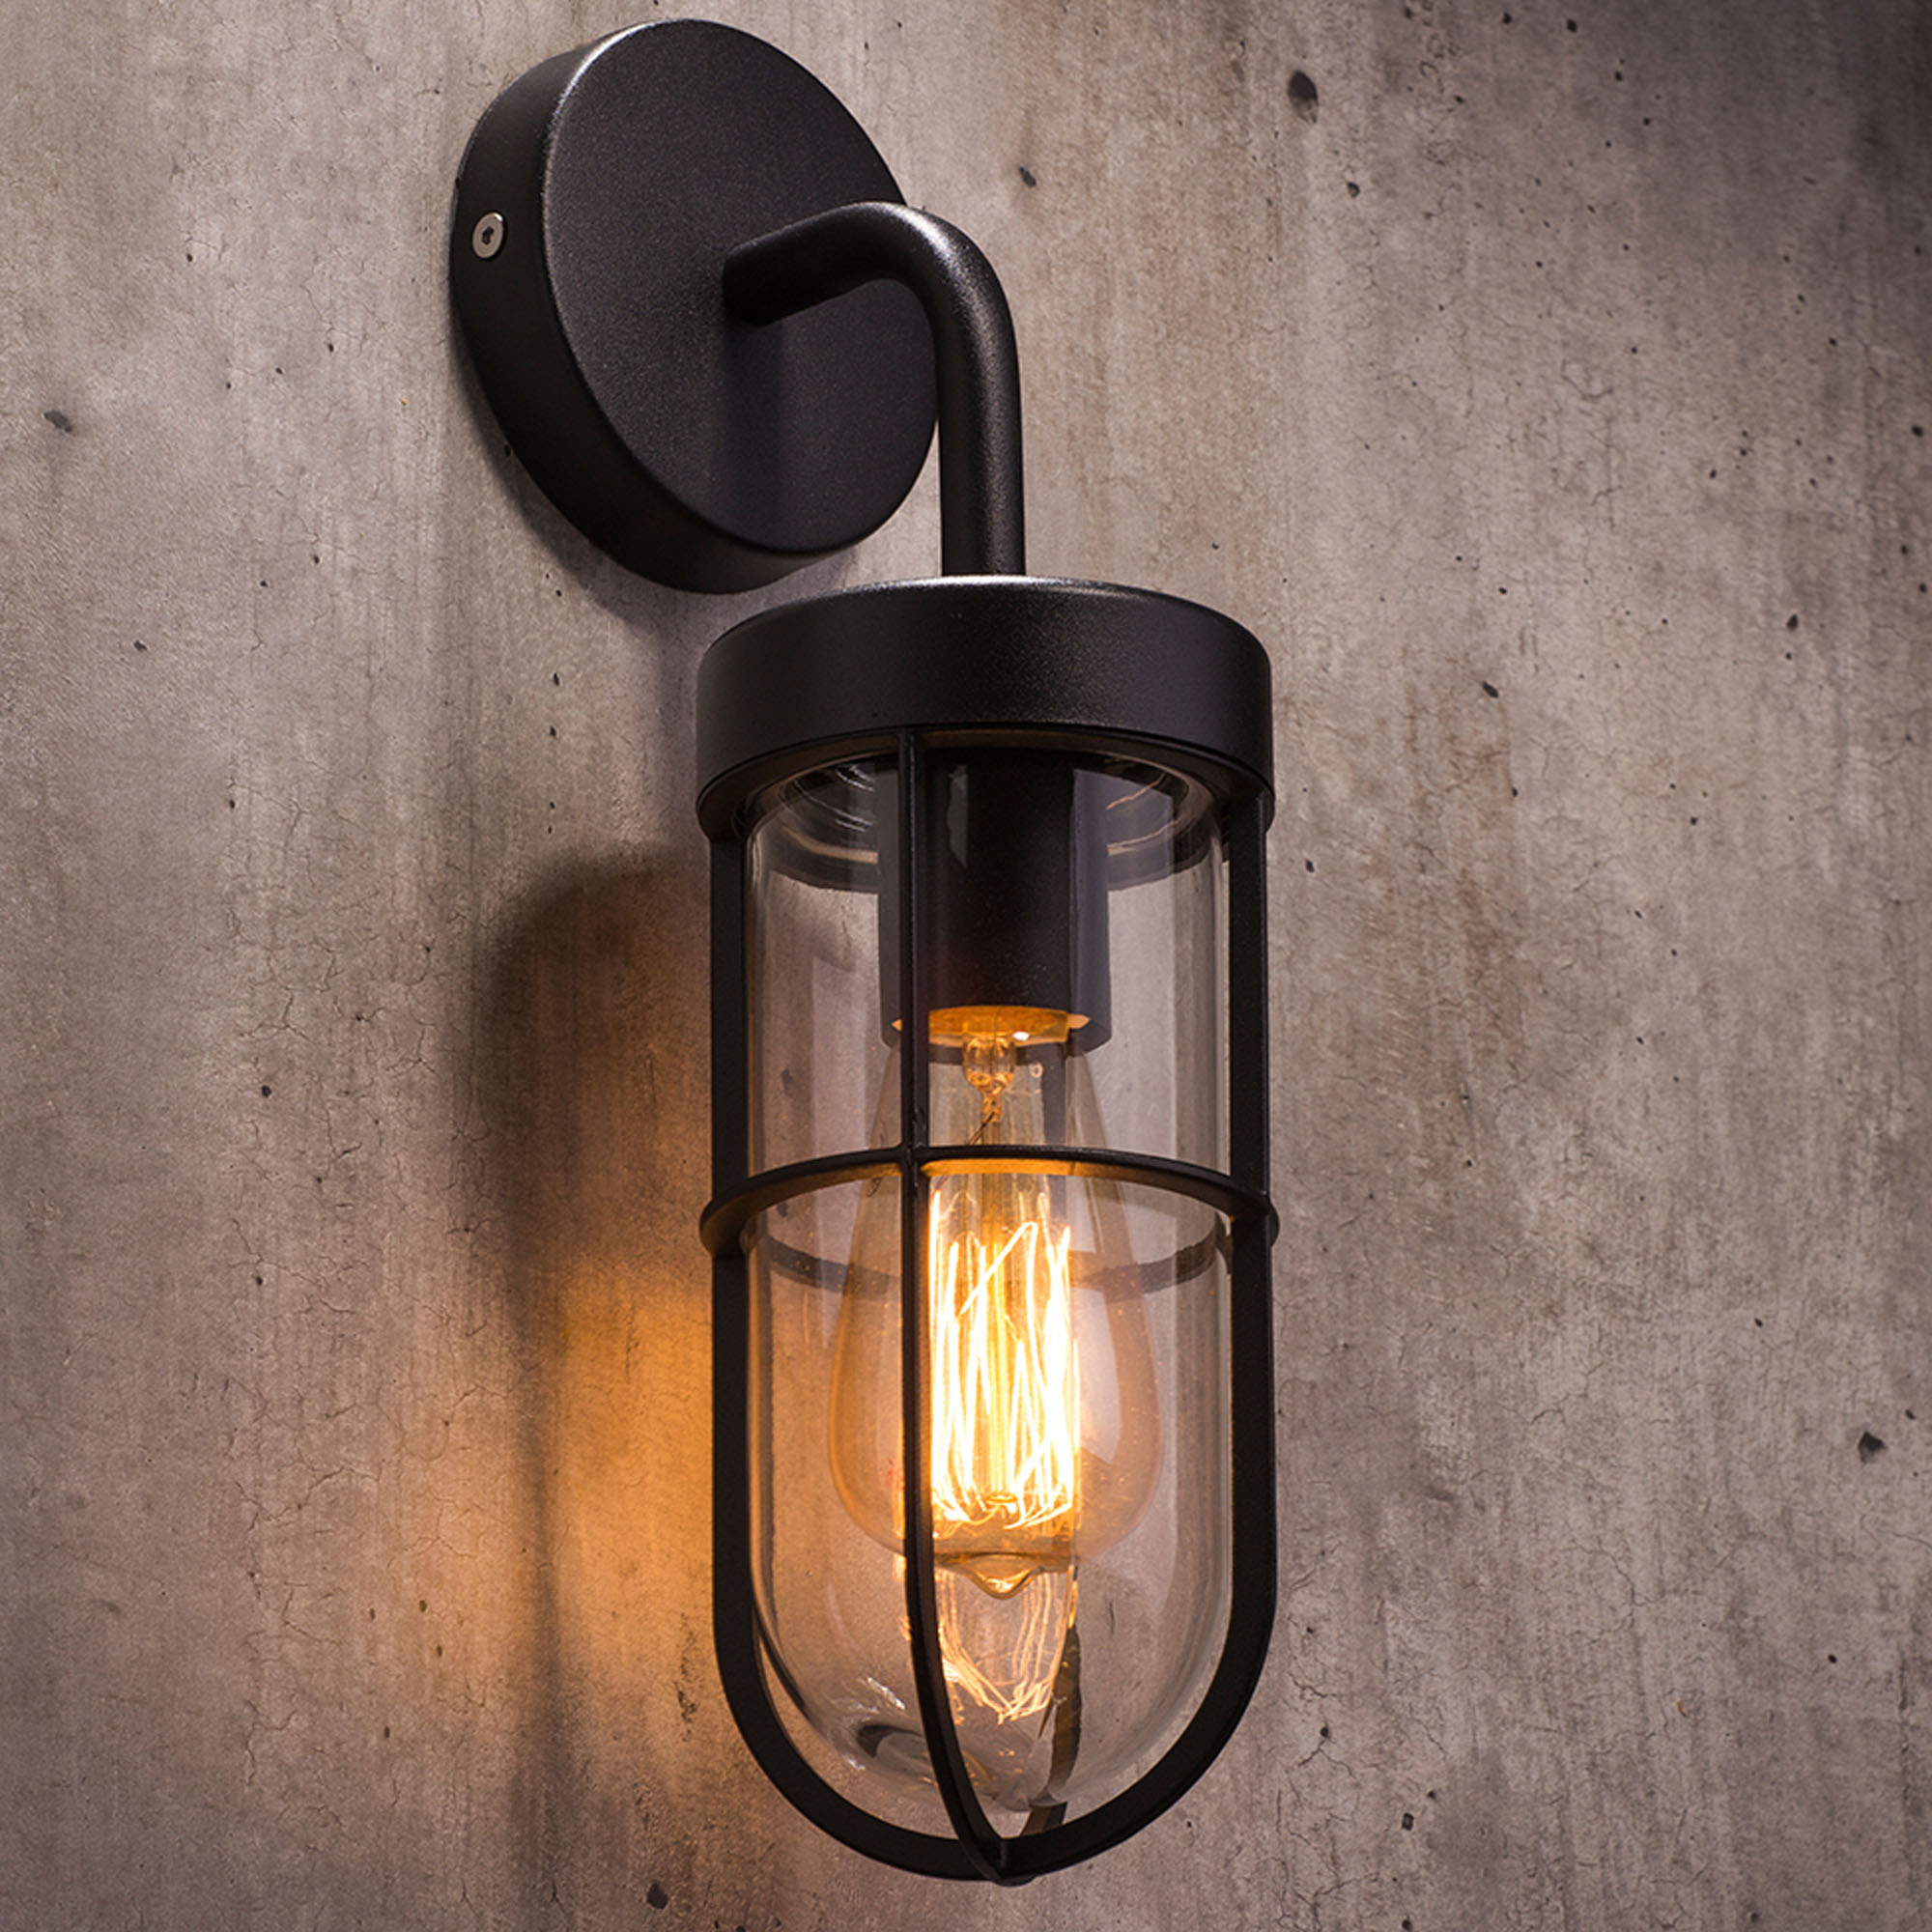 Zinc Woking Caged Outdoor Wall Lantern – Black Throughout Most Up To Date Socorro Black Outdoor Wall Lanterns (View 4 of 20)